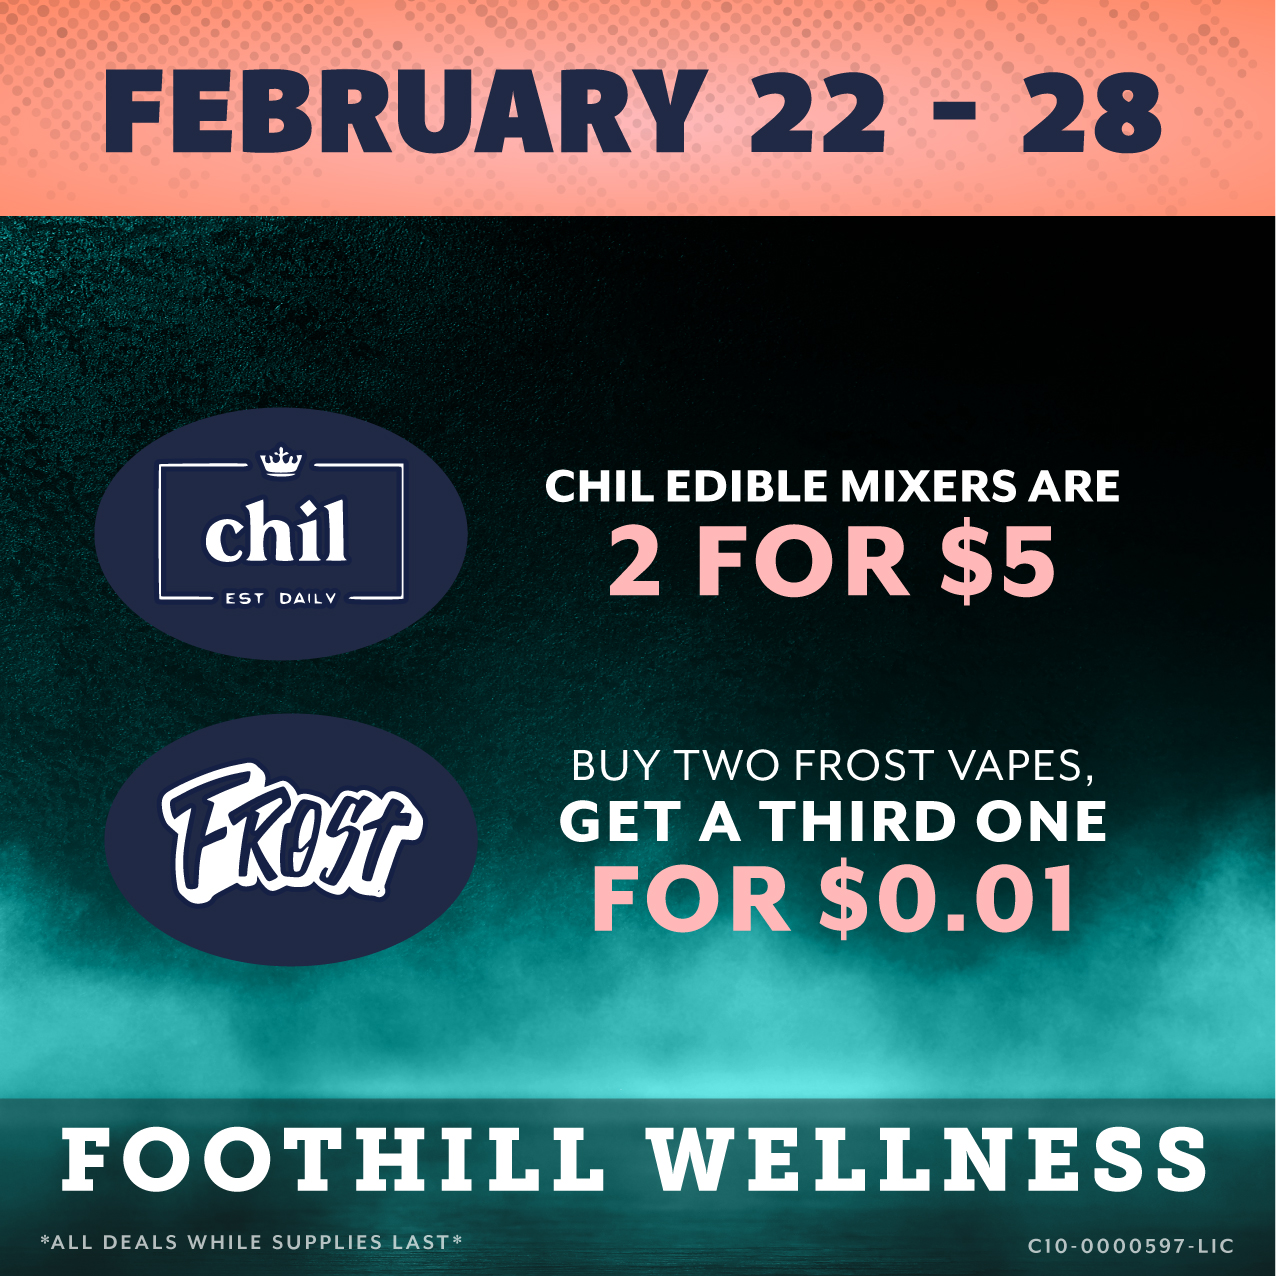 Foothill February 22 - 28 Flyer